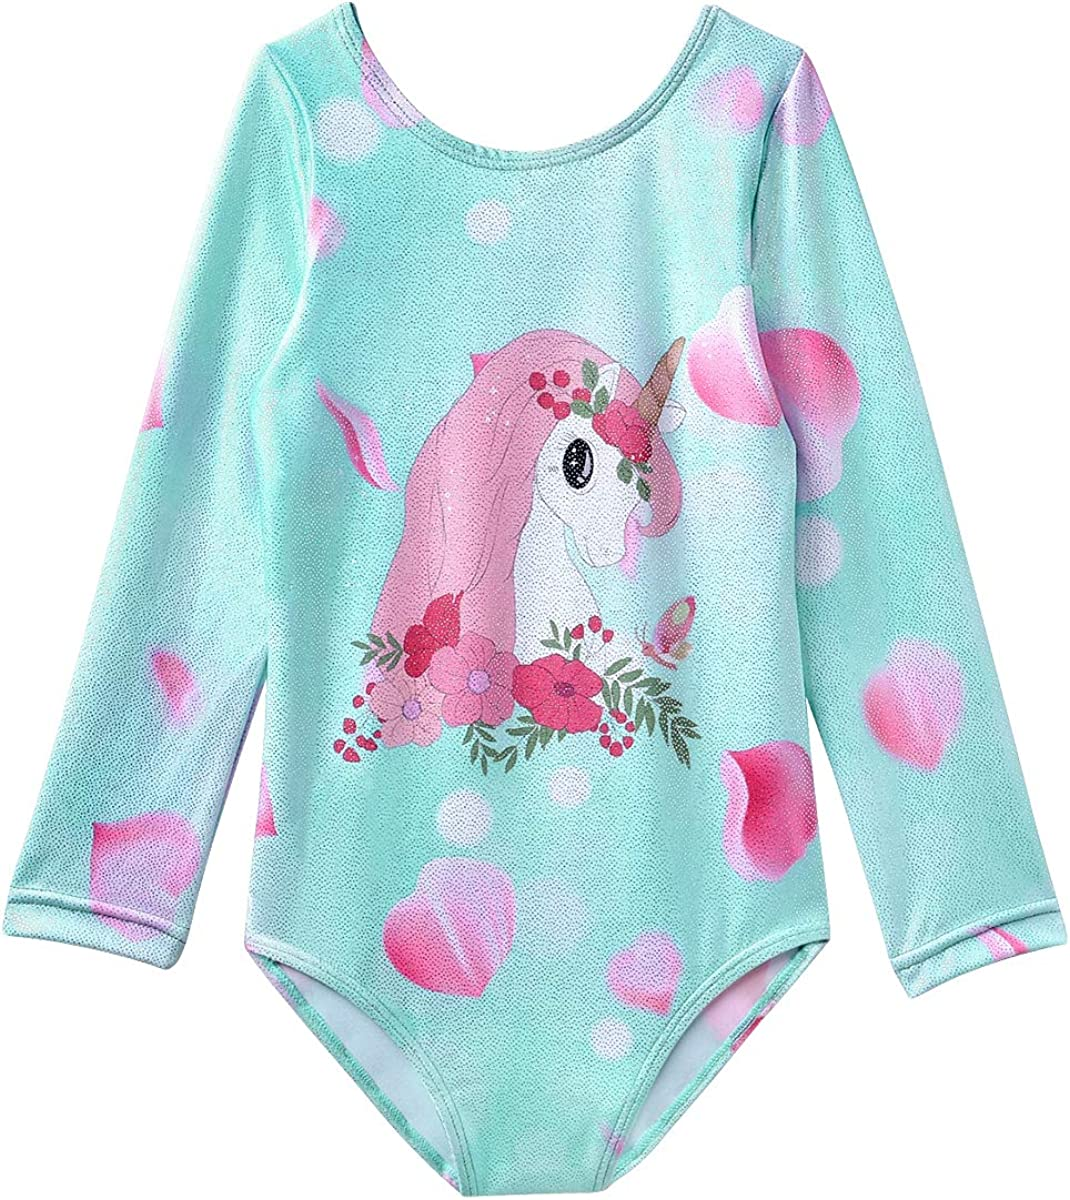 Gymnastics Leotards for Girls Long service Sleeve Bal Year-end annual account Apparel